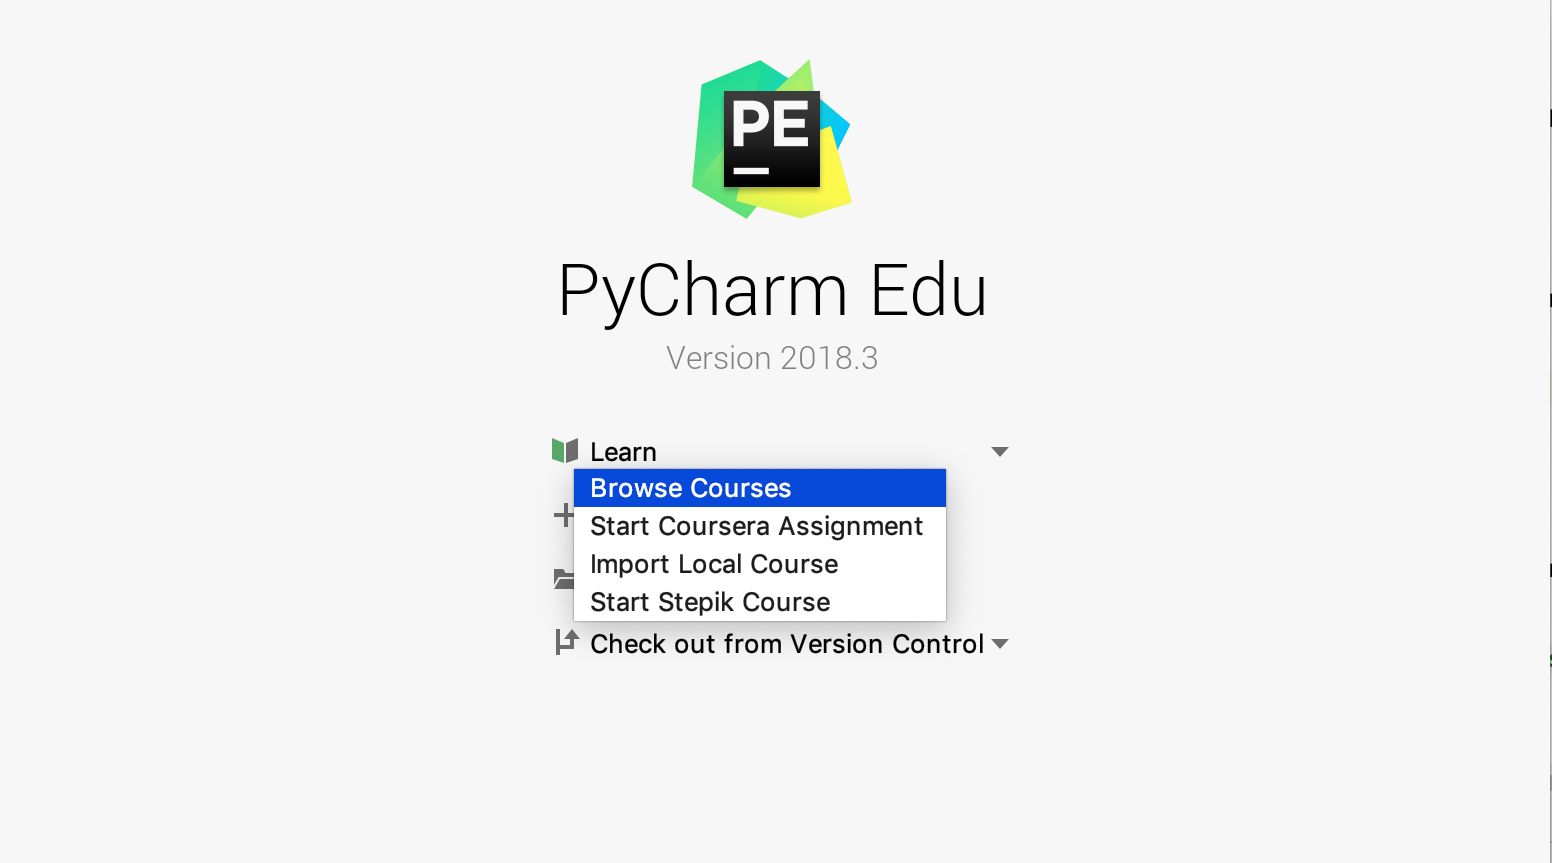 Browse courses